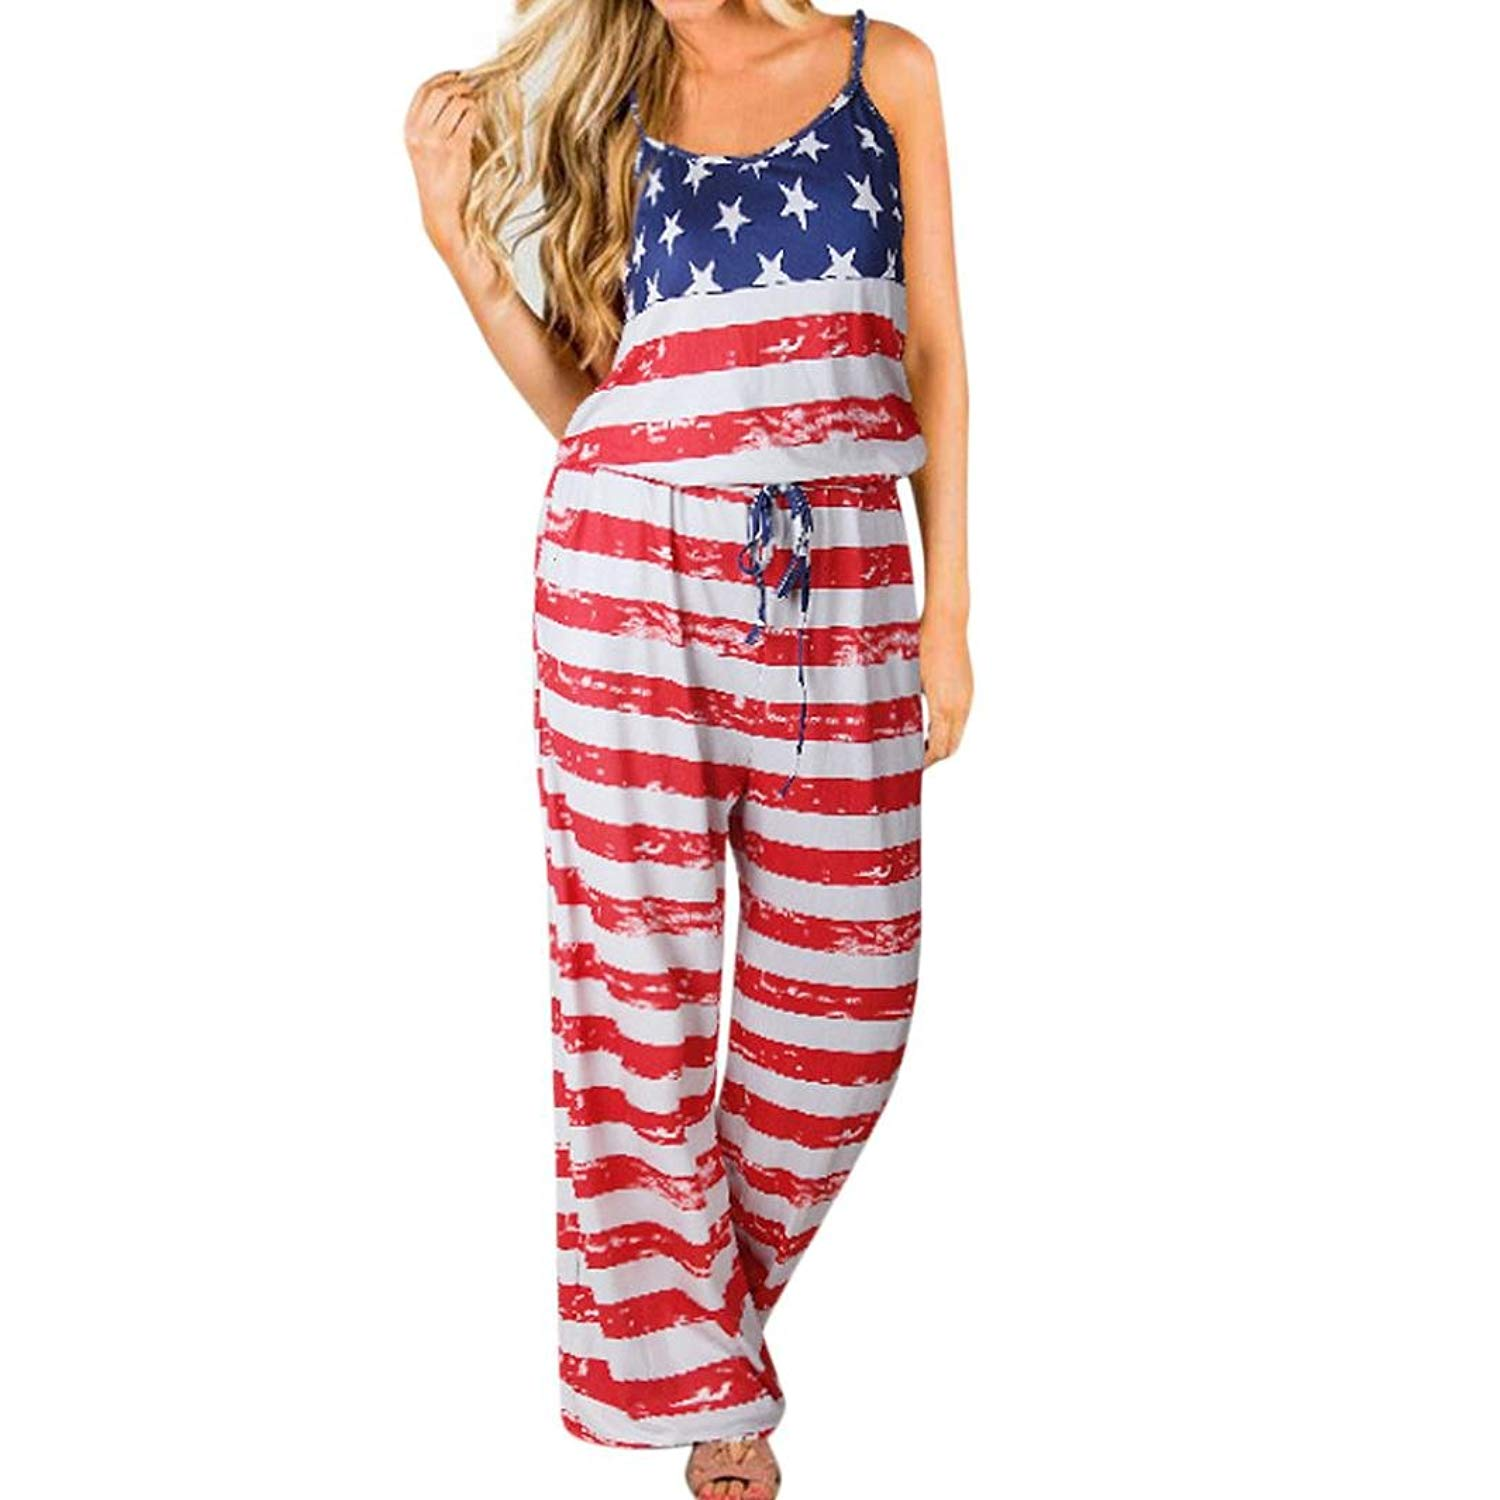 4e6e9ea8f46 Get Quotations · RAISINGTOP Romper USA Flag Women American Flag Sleeveless  Holiday Long Playsuits Jumpsuit Wide Leg Harem Pants